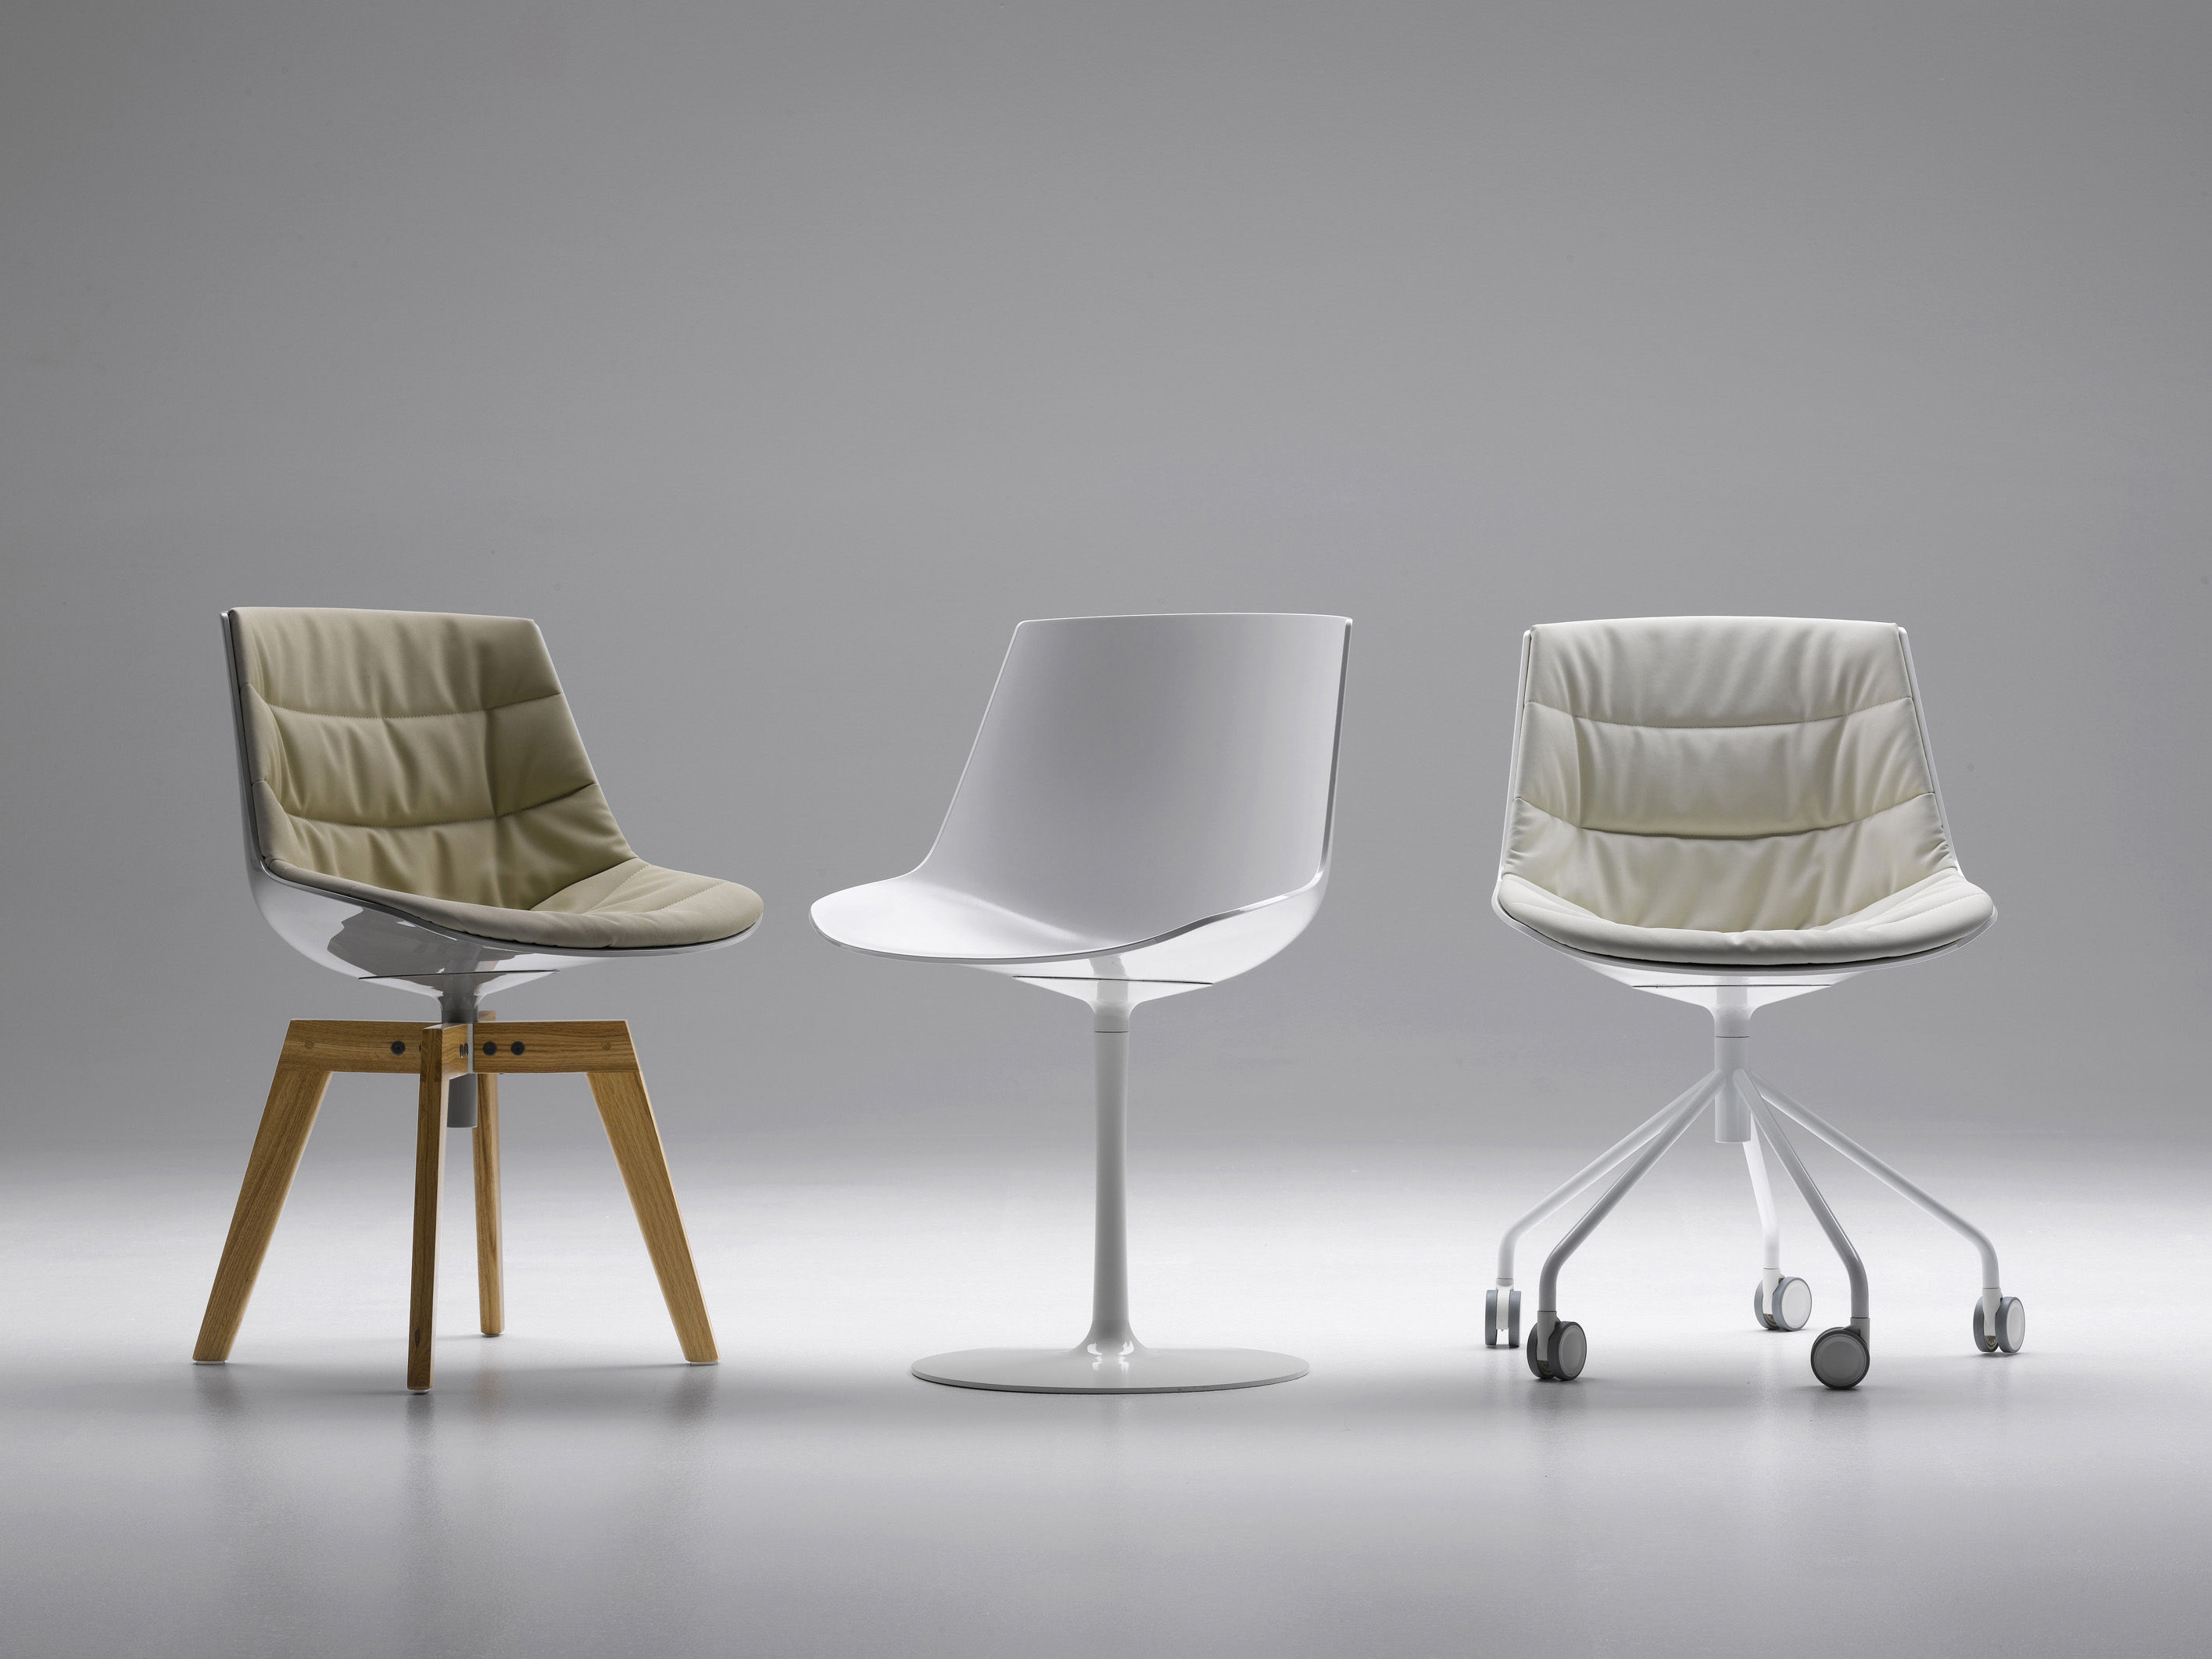 flow swivel chair 4 oak legs white shell natural oak frame by mdf italia. Black Bedroom Furniture Sets. Home Design Ideas